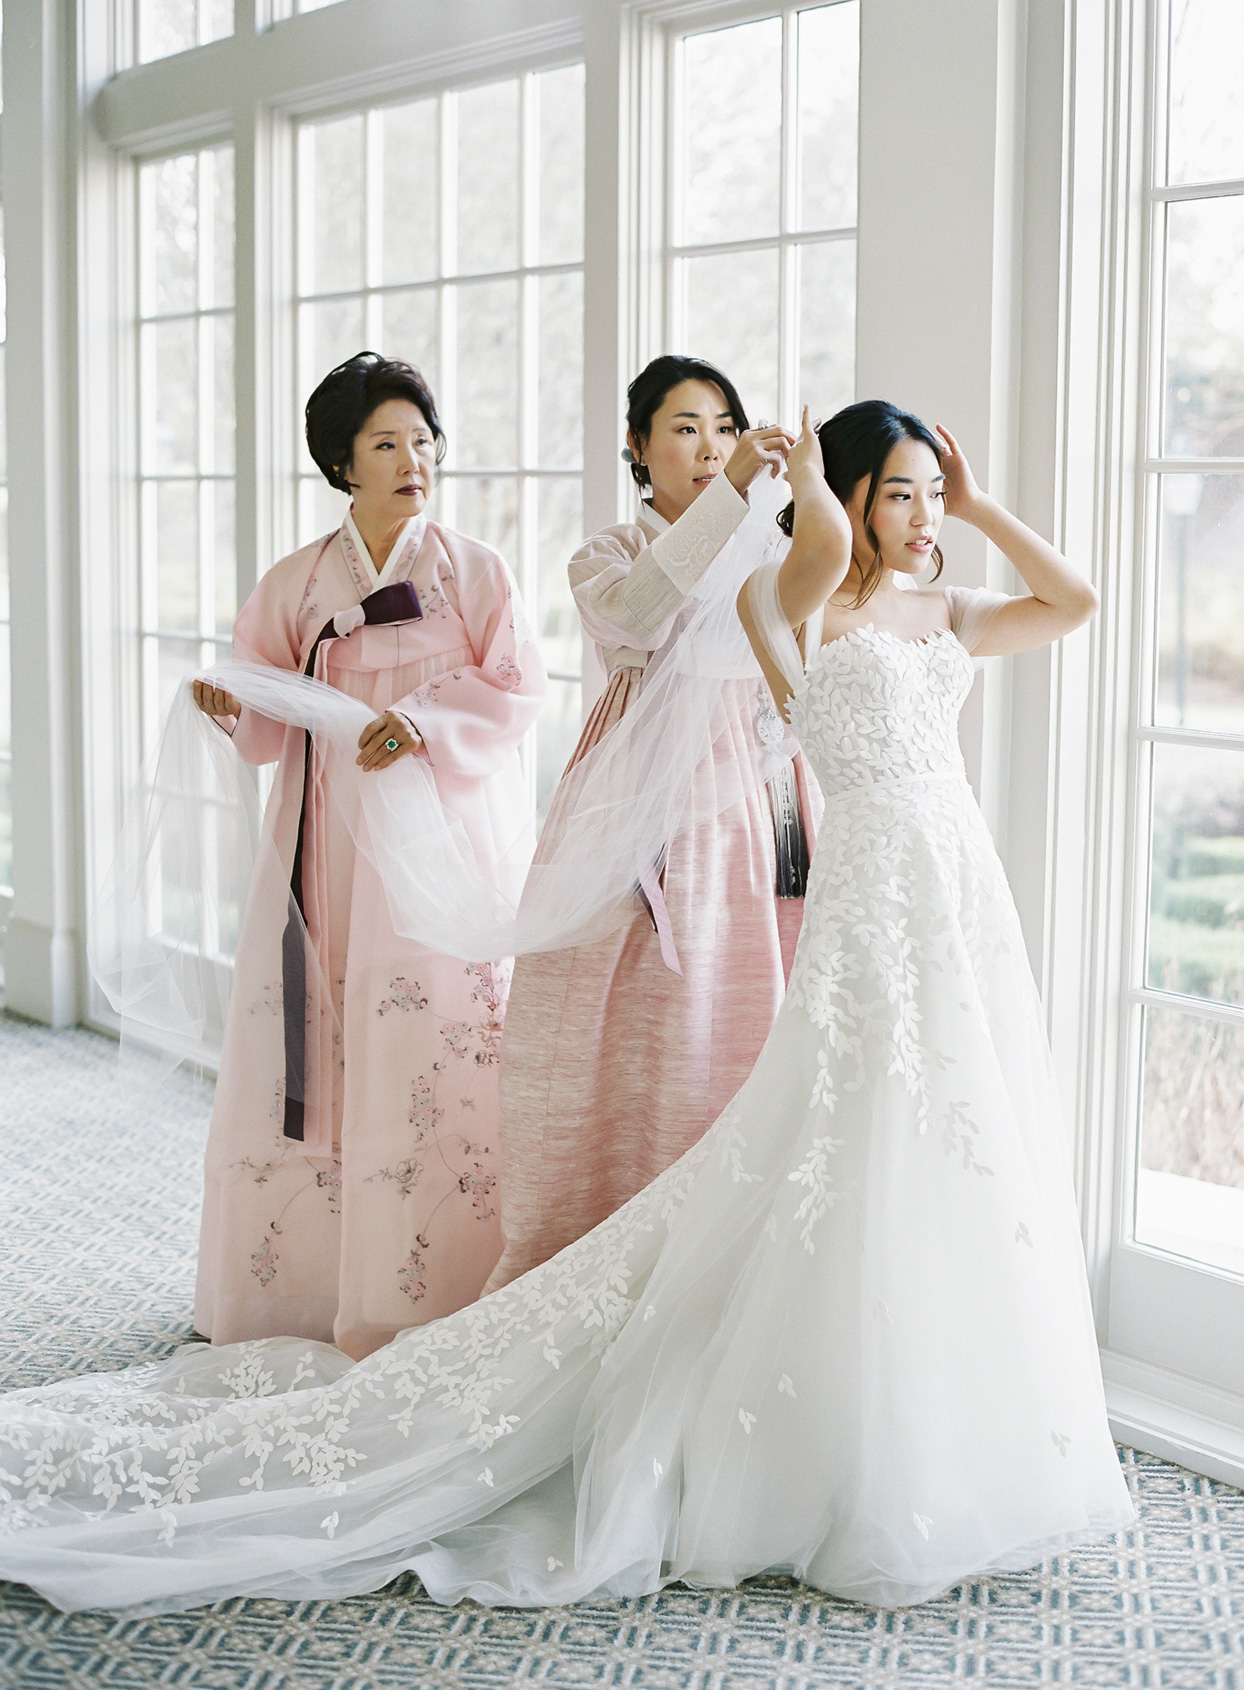 bride getting ready for wedding with women putting on veil